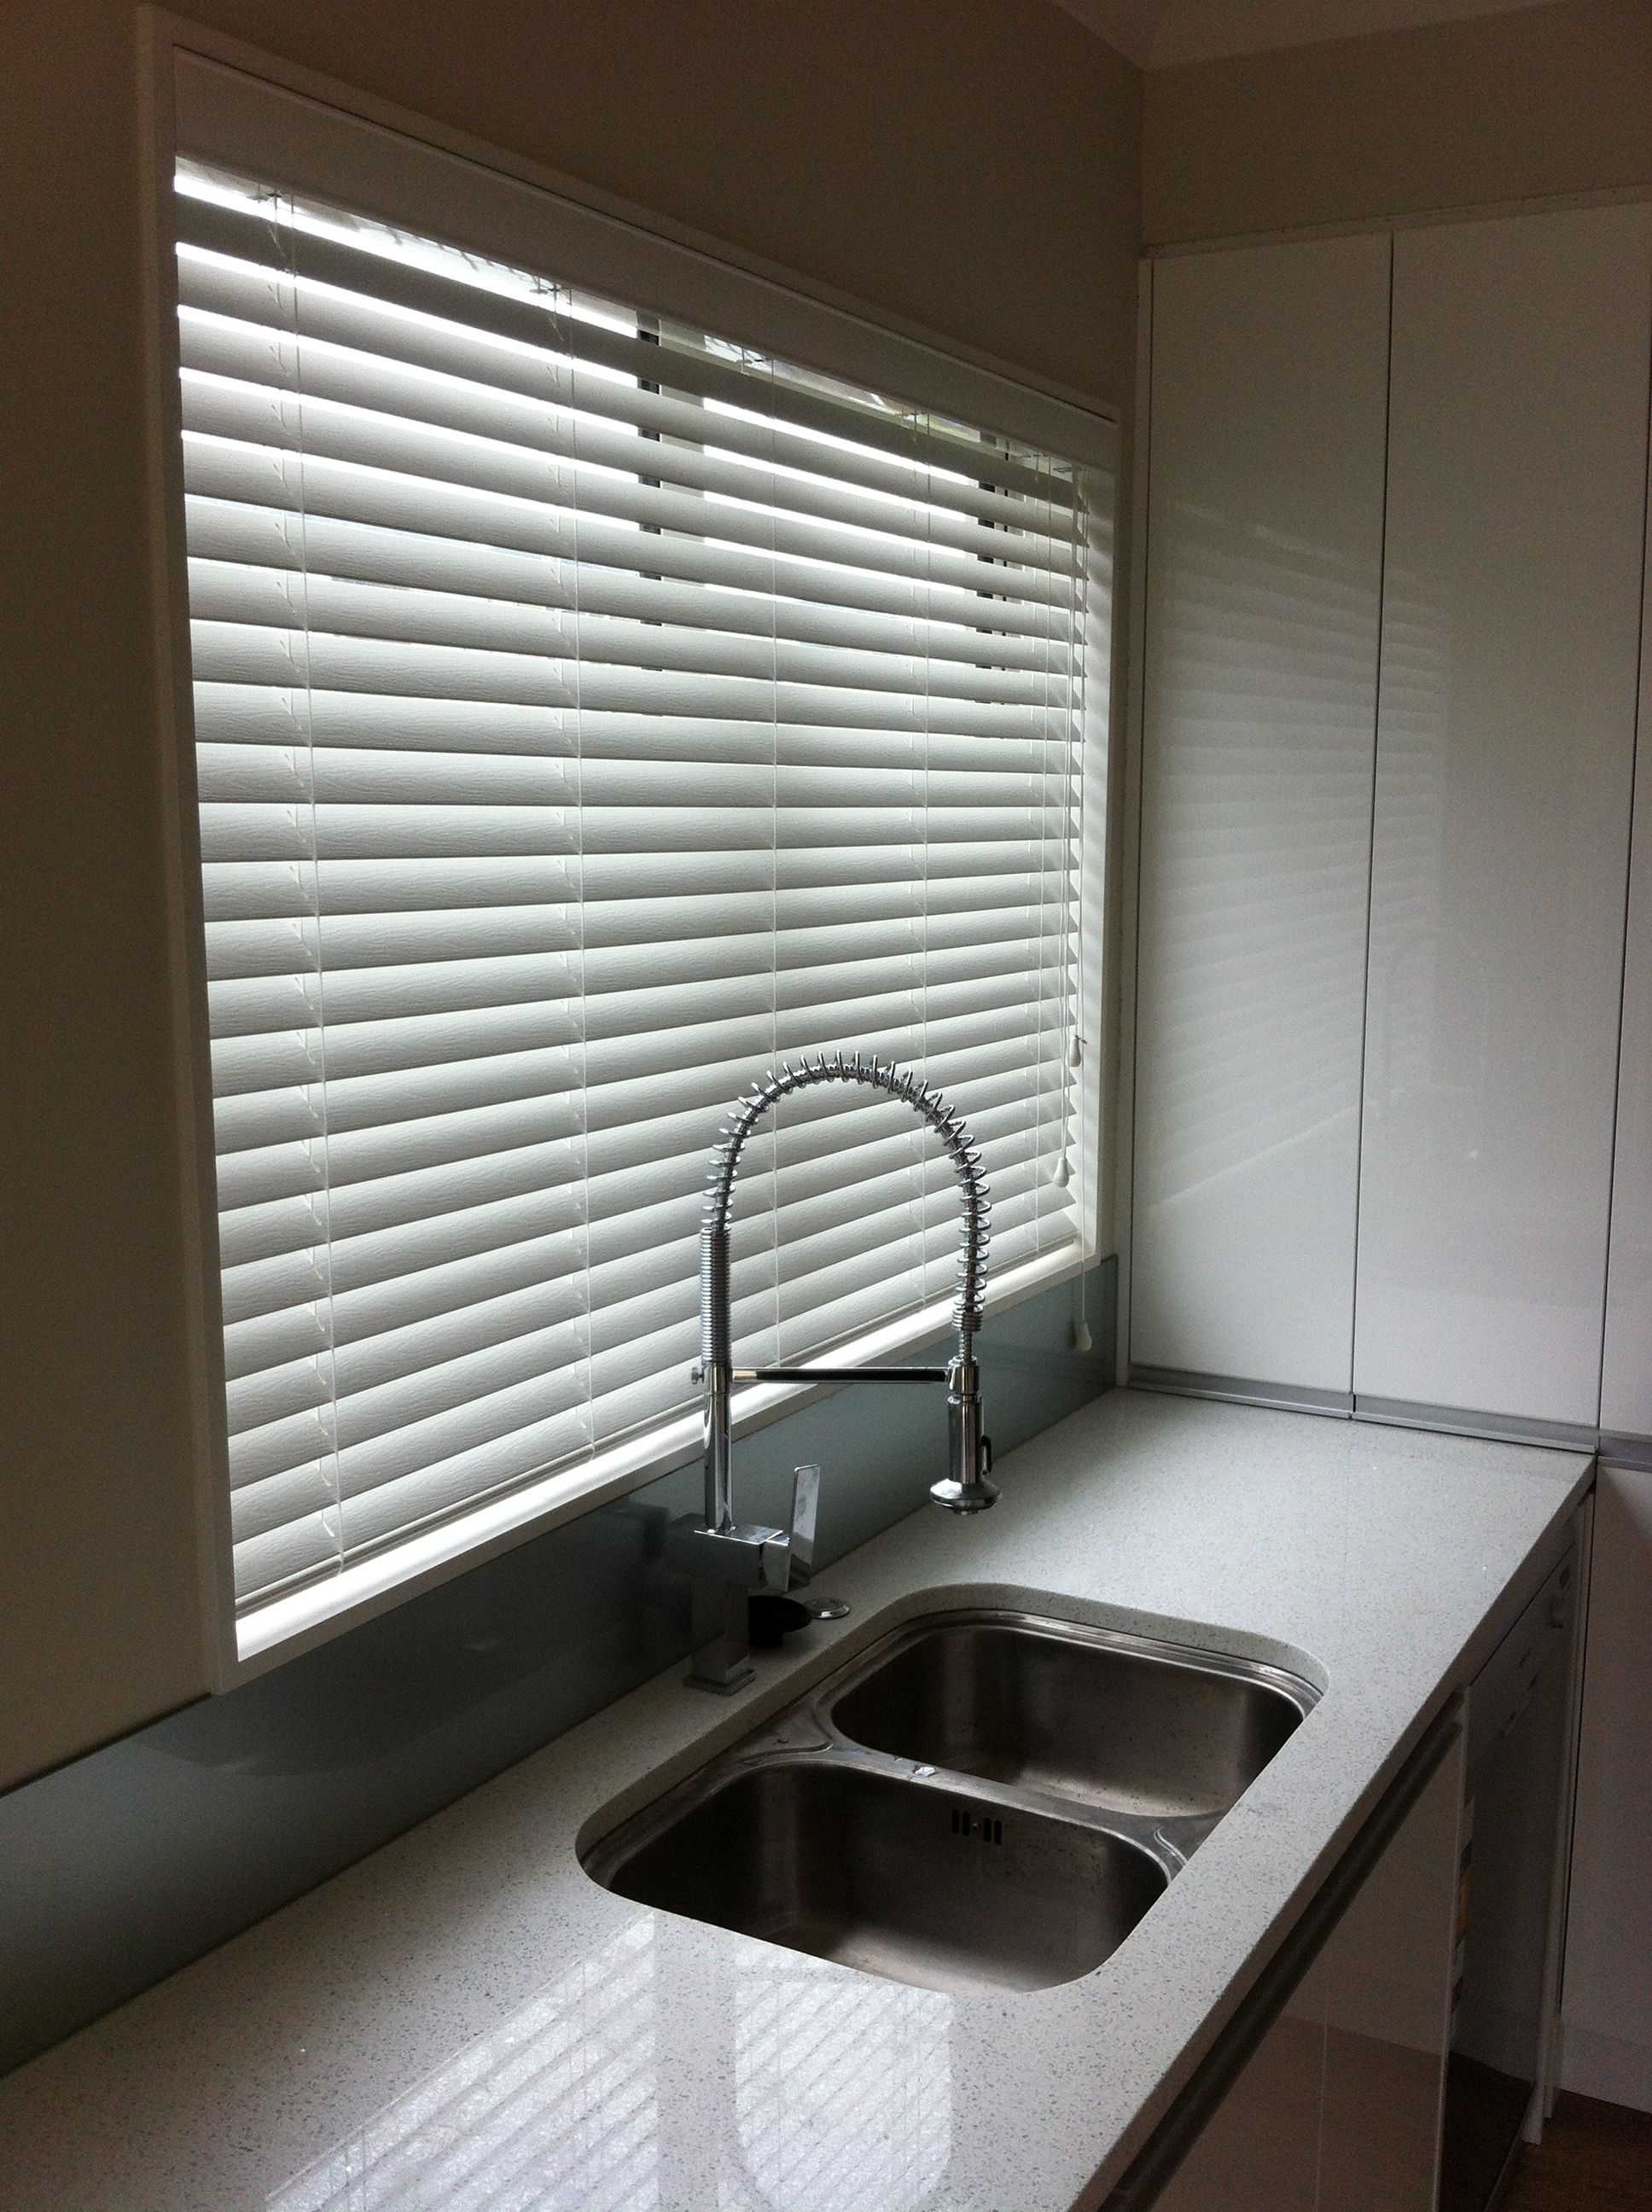 Woodvision Embossed Venetians By Blinds Online Ltd Get Your Custom Online Quote At Blindsonline Net Nz Blinds Blinds Online Blindsonline